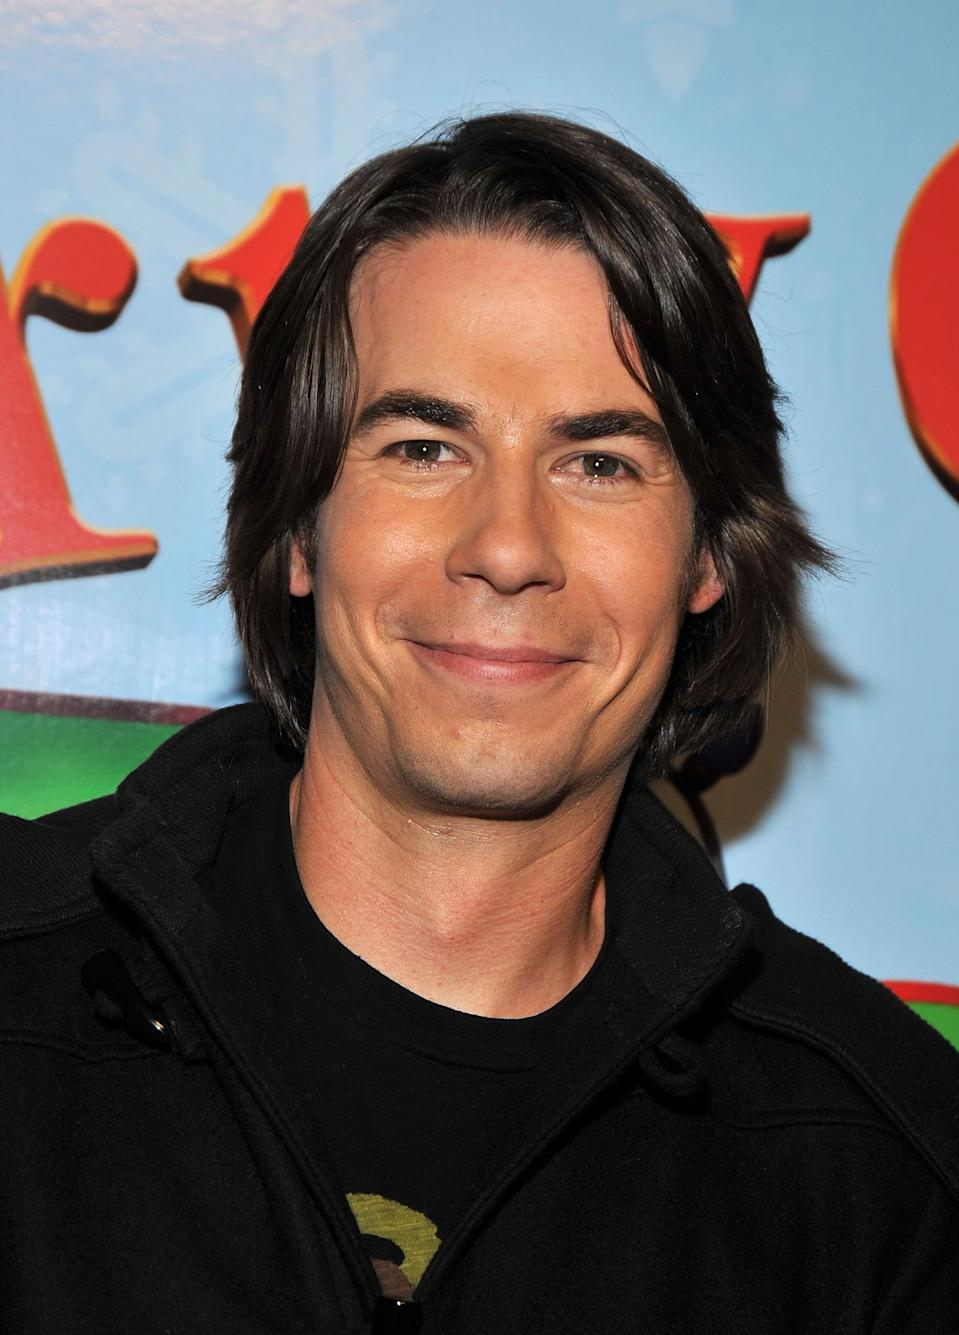 """<p><strong>Drake &amp; Josh</strong> superfans may know Jerry Trainor as """"Crazy Steve,"""" but to us, he's Carly Shay's beloved older brother, Spencer. When the pilot episode for <strong>iCarly</strong> aired, he was 30 years old, making him the oldest member of the cast.</p>"""